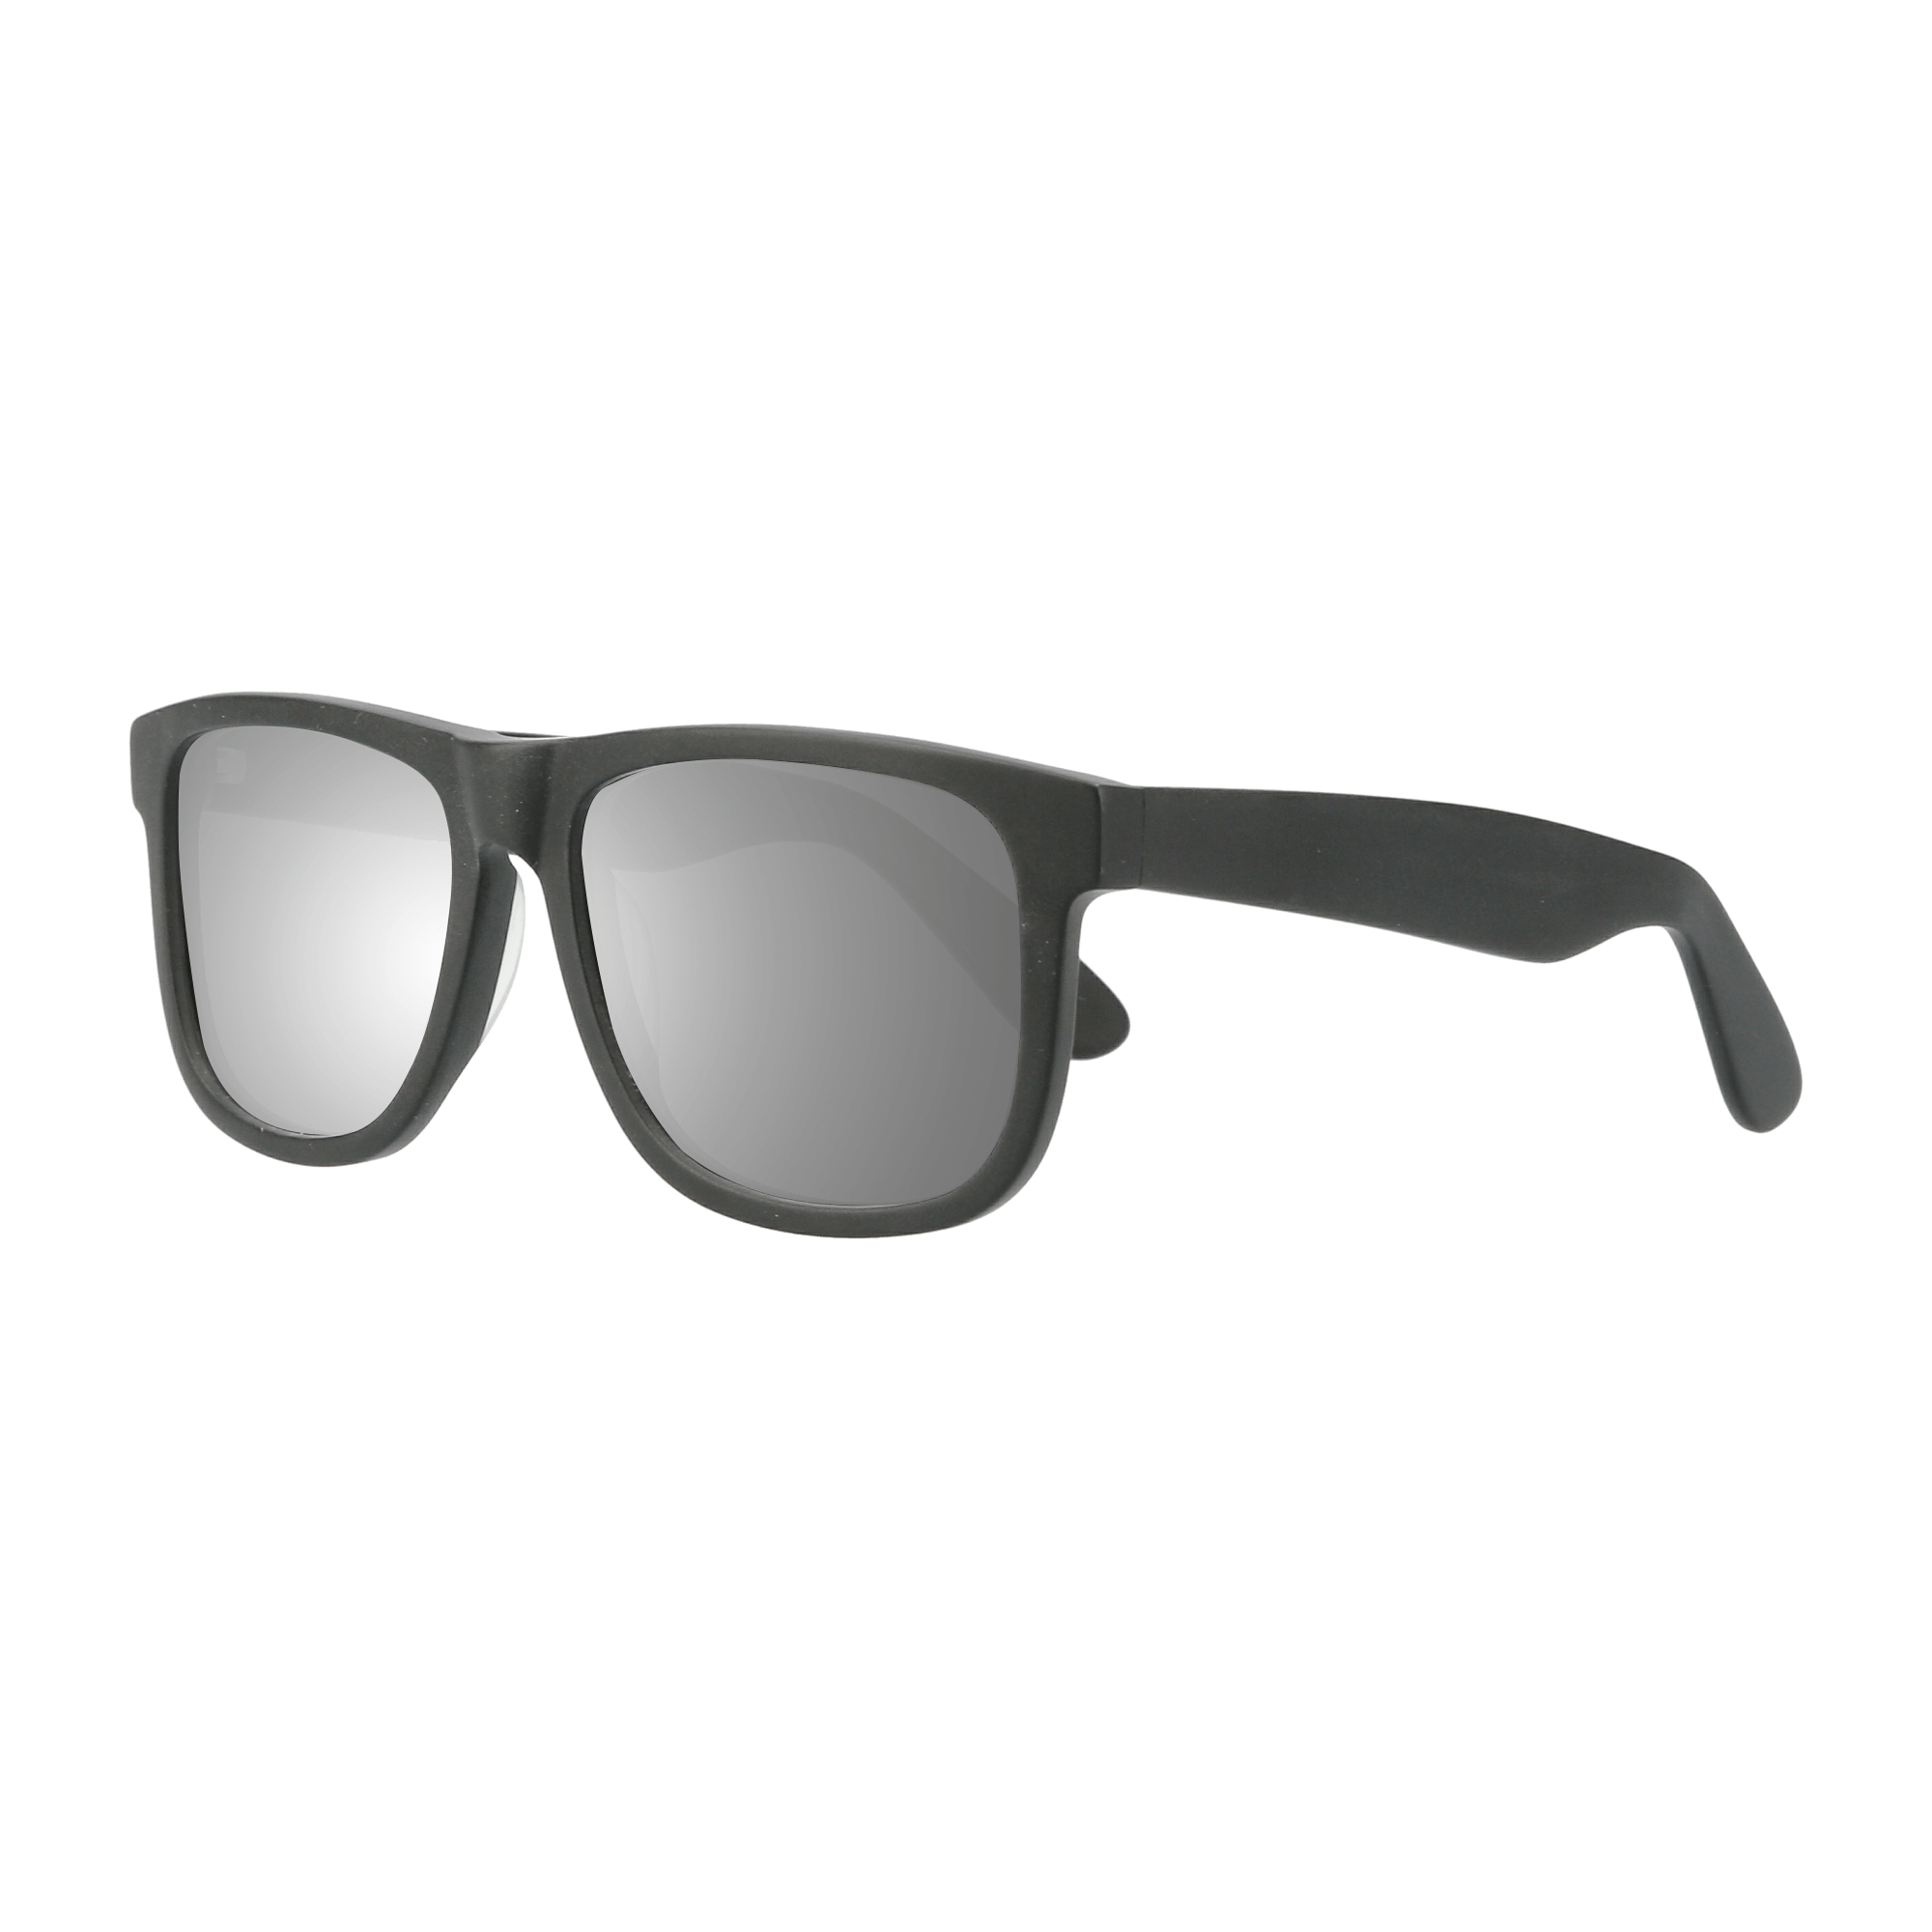 FLYNN - MATTE BLACK SUNGLASSES SAINT REETS